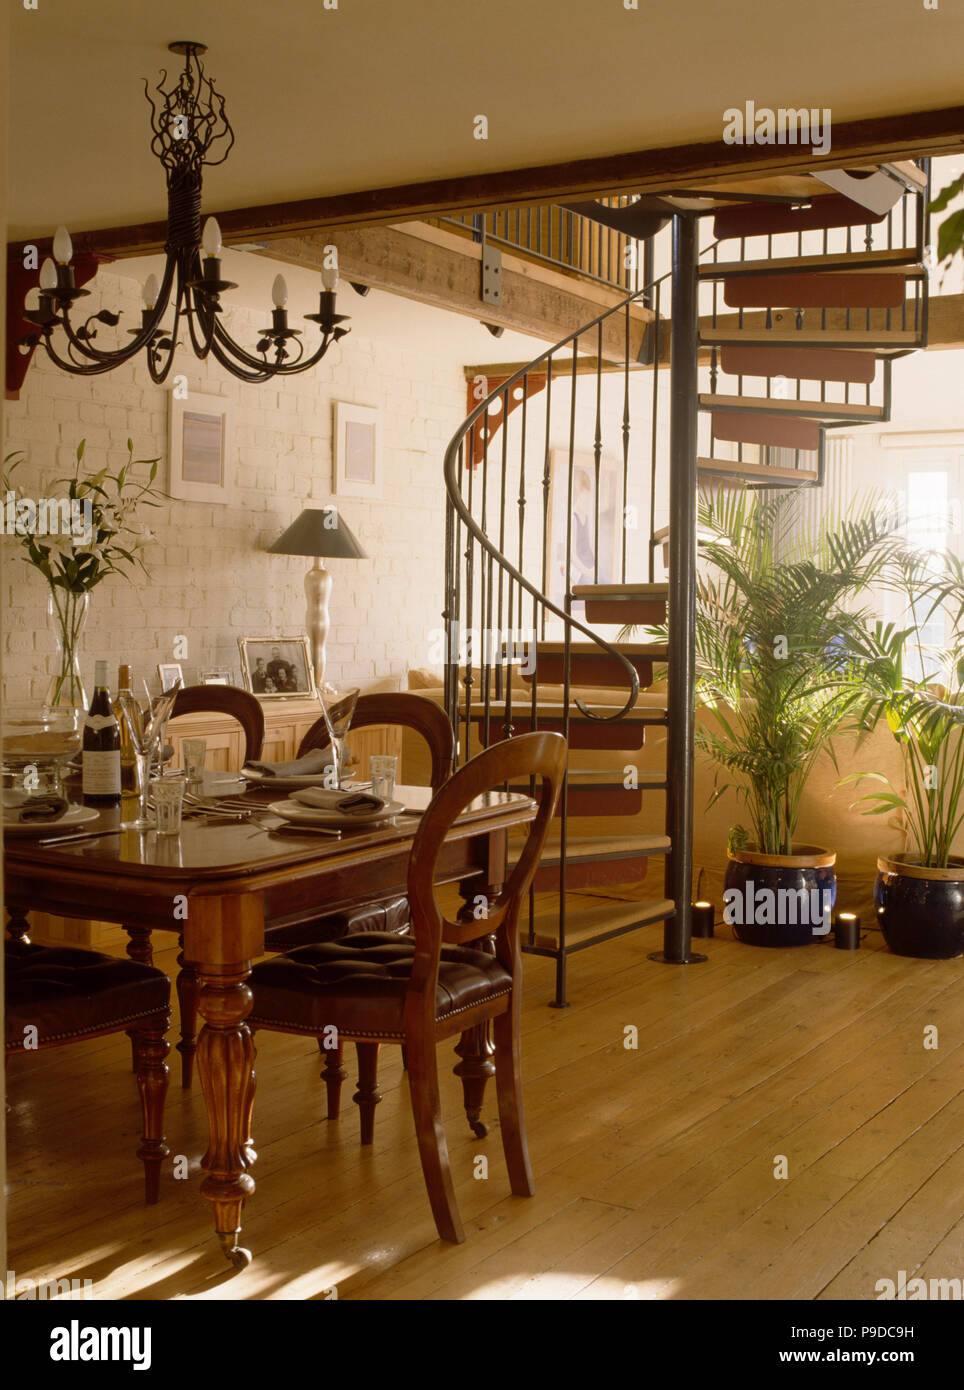 Victorian Table And Chairs In Dining Room With Modern Spiral Staircase Wooden Flooring